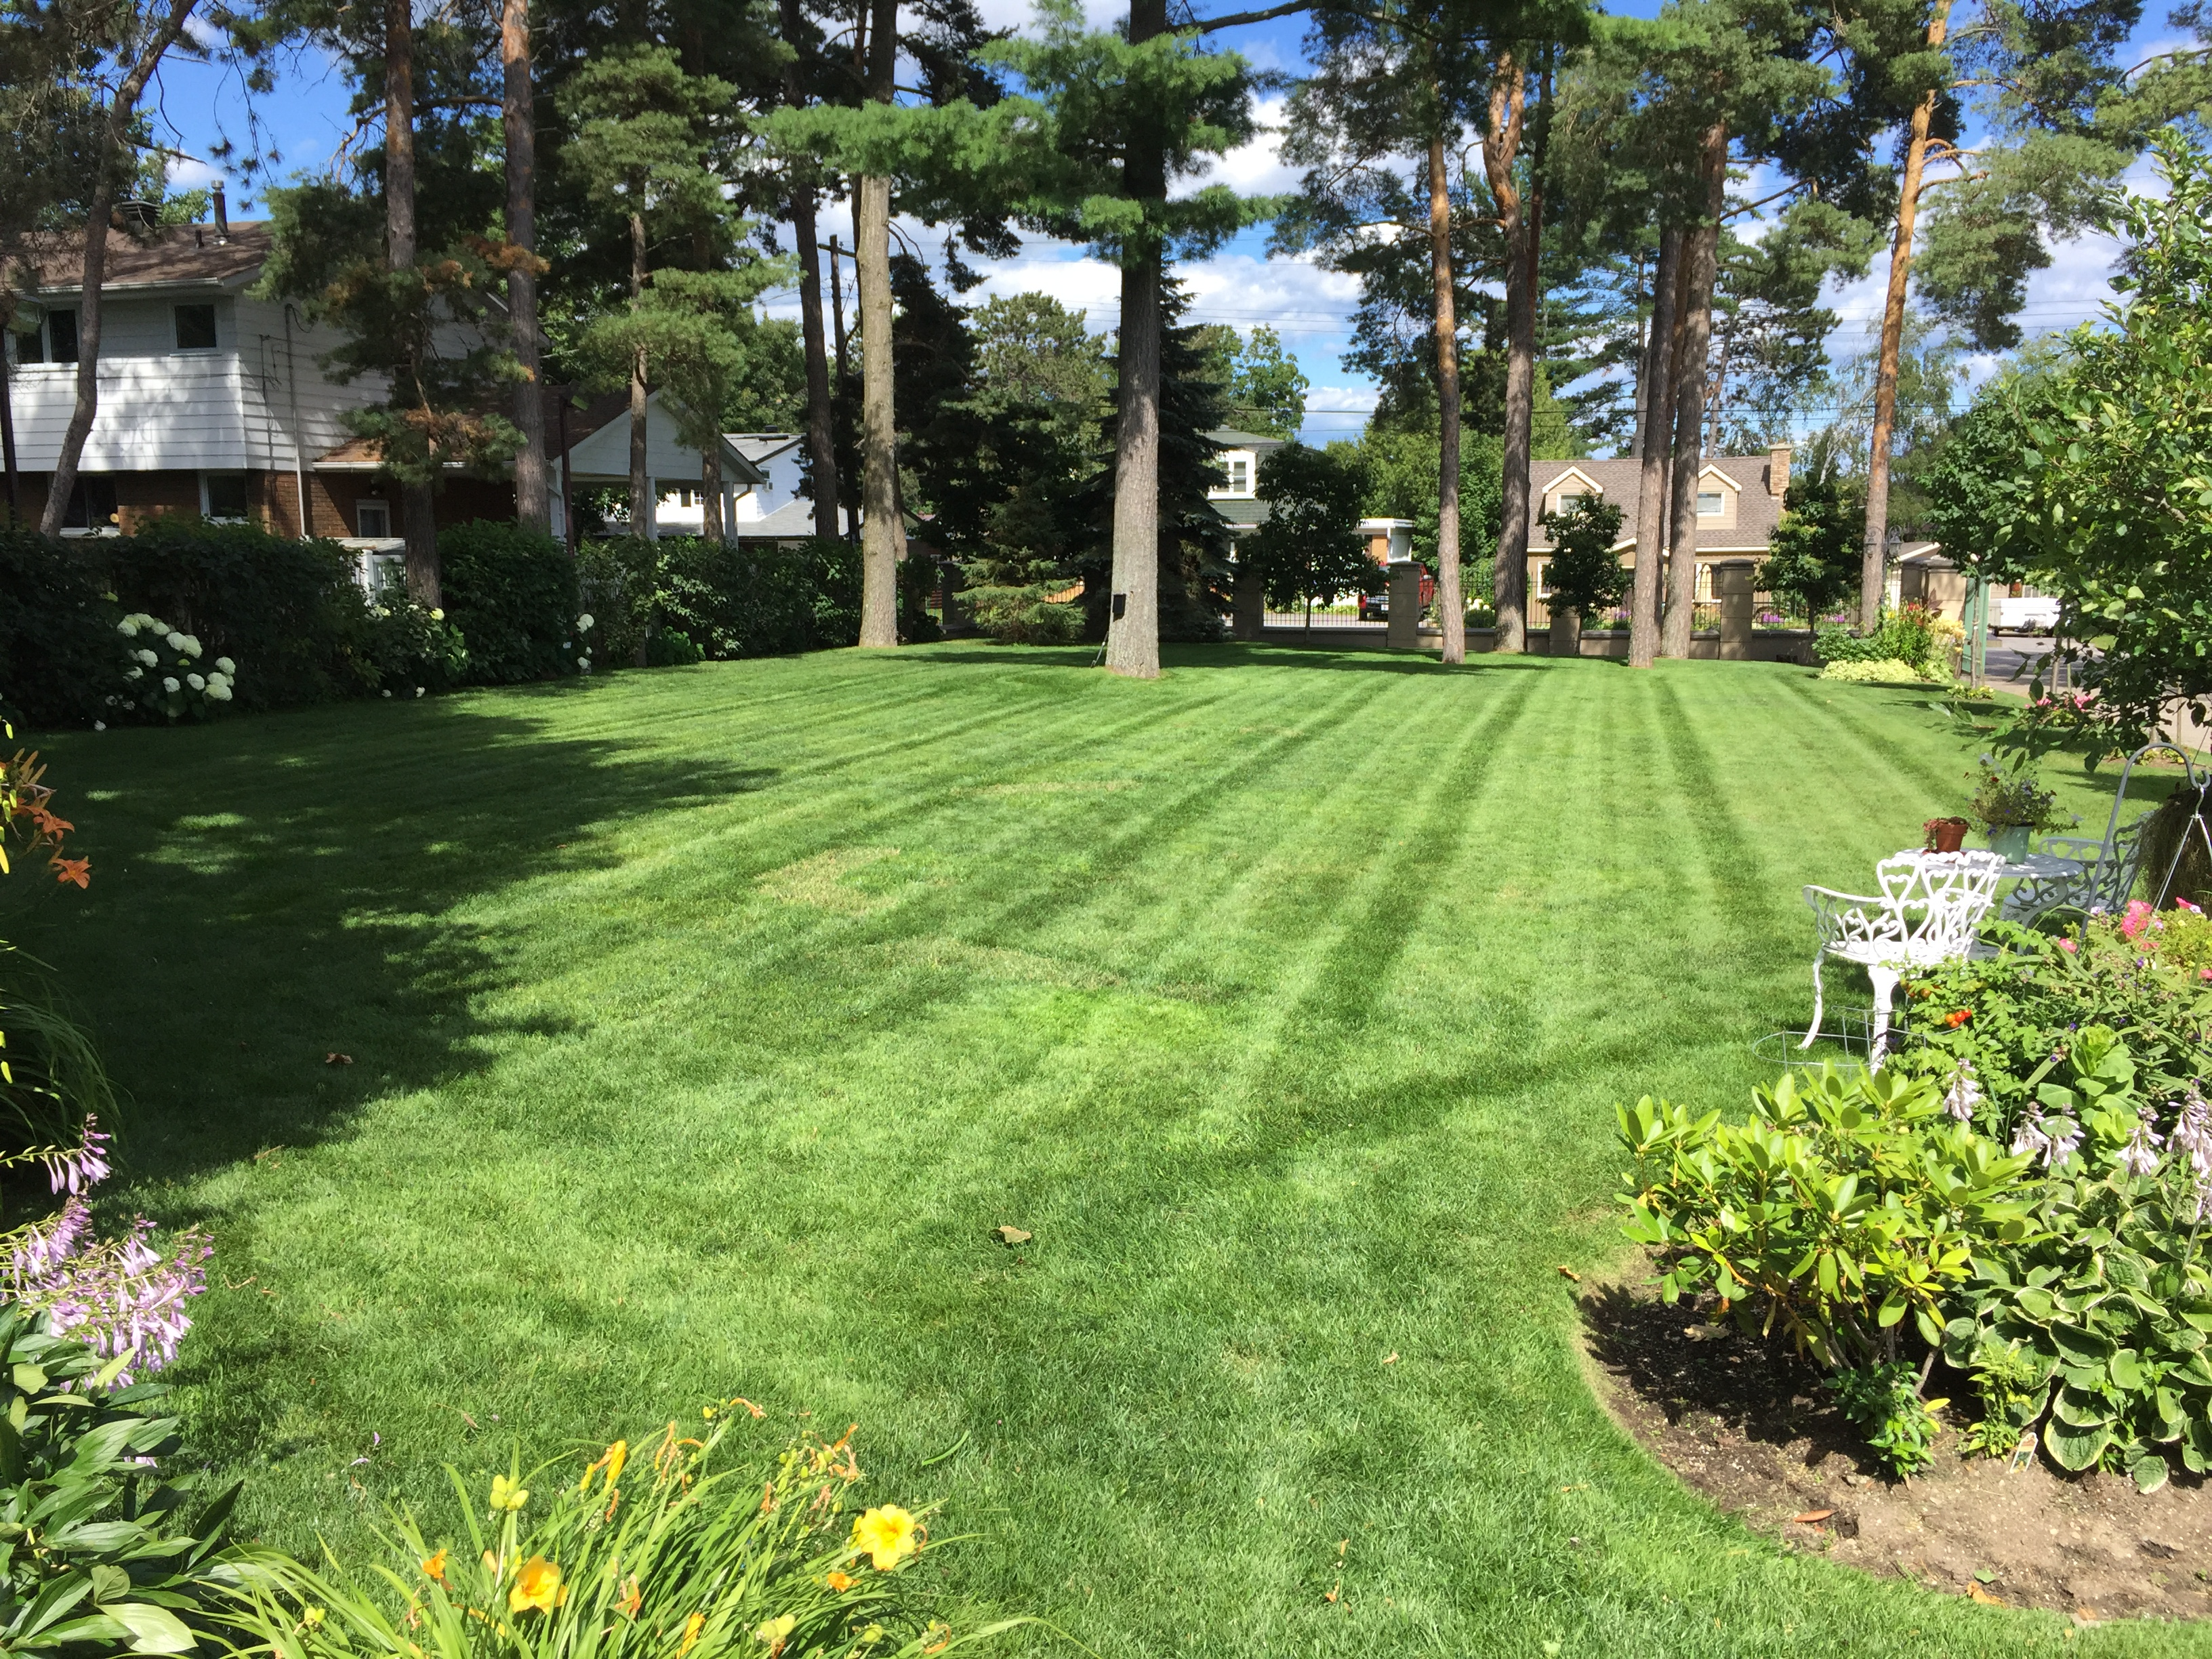 WEEKLY LAWN MAINTENANCE